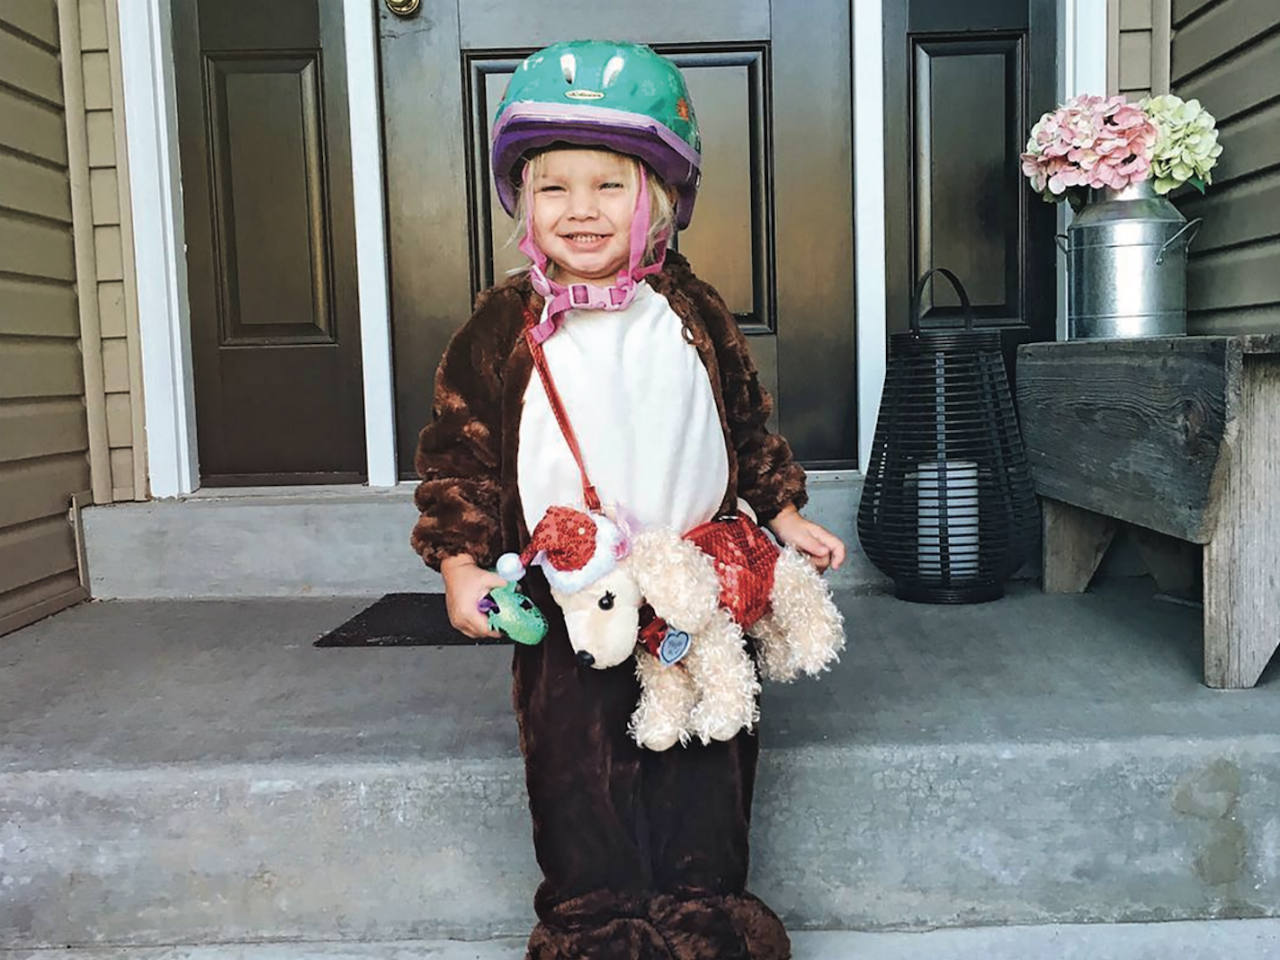 A little girl on the front steps of her house dressed in a furry costume and bike helmet